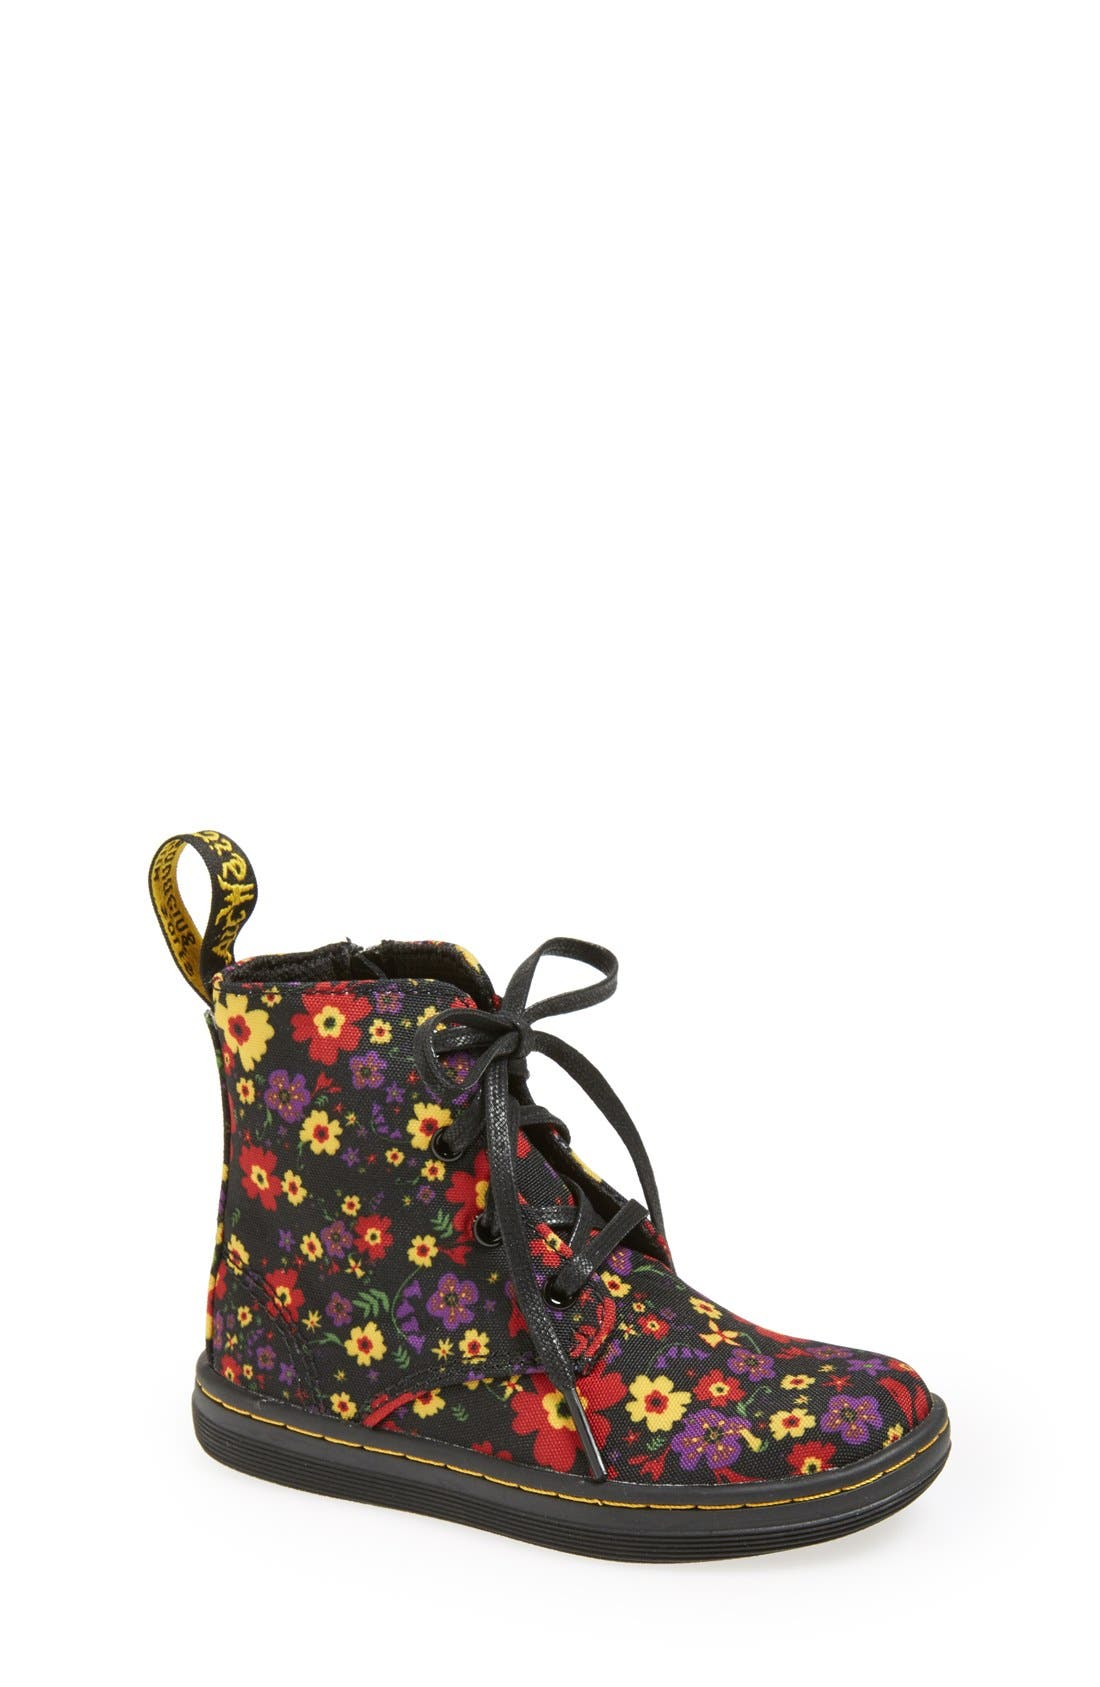 Alternate Image 1 Selected - Dr. Martens 'Laney' Floral Print Canvas Boot (Walker & Toddler)